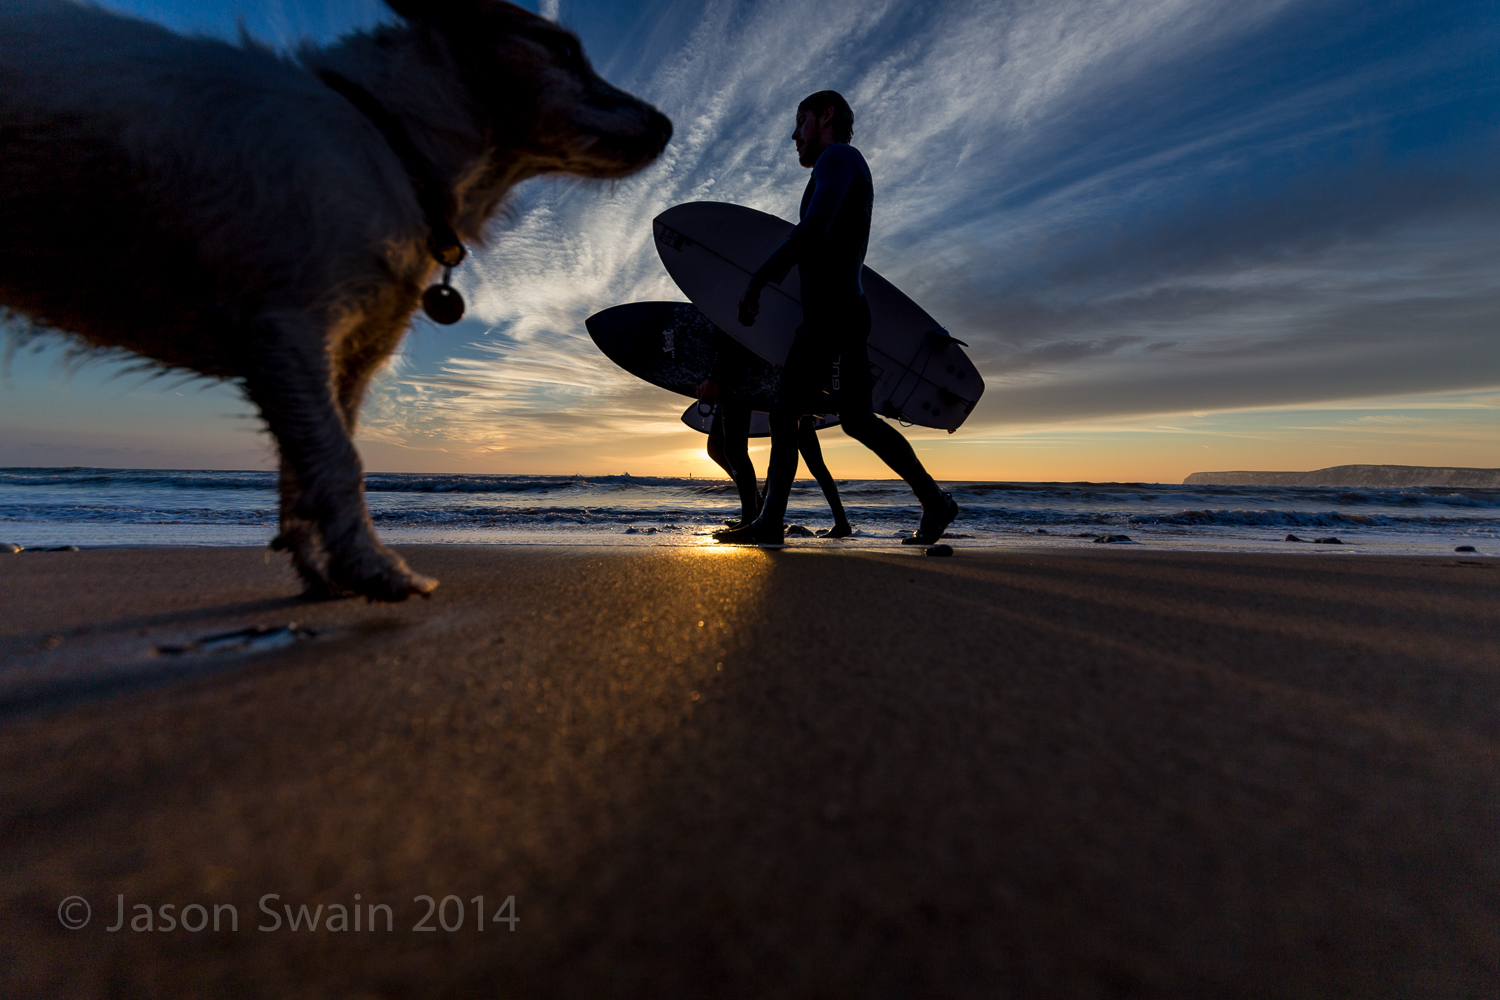 The Giant Surfing Dog Photobomb Incident.